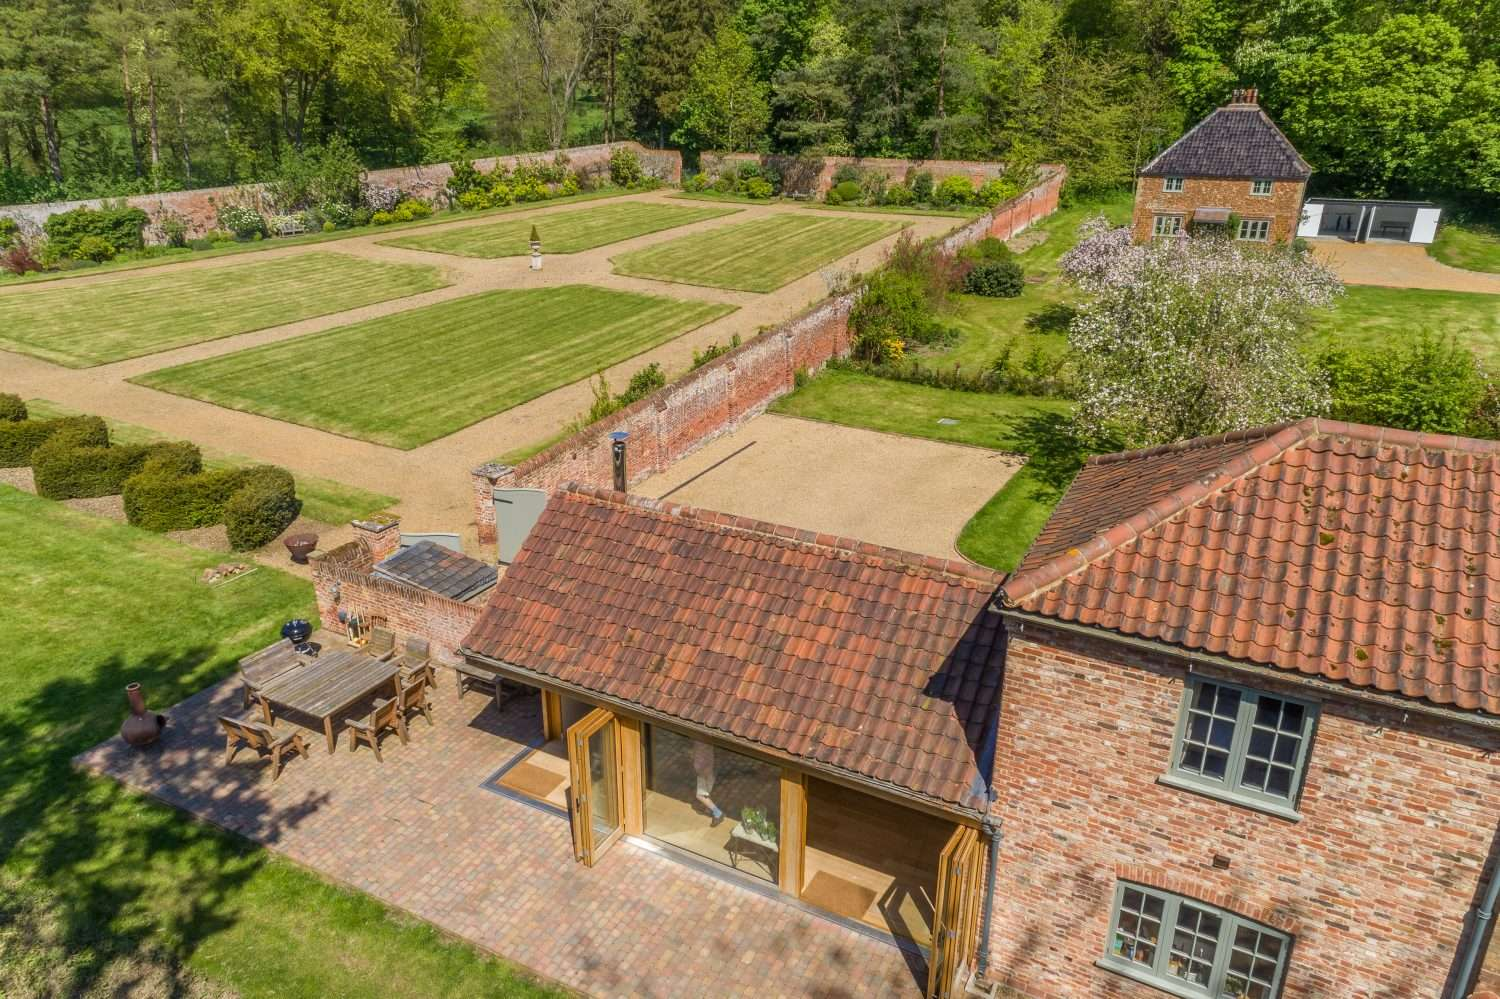 Aerial view of the walled garden and country estate holiday cottages at Fring in Norfolk